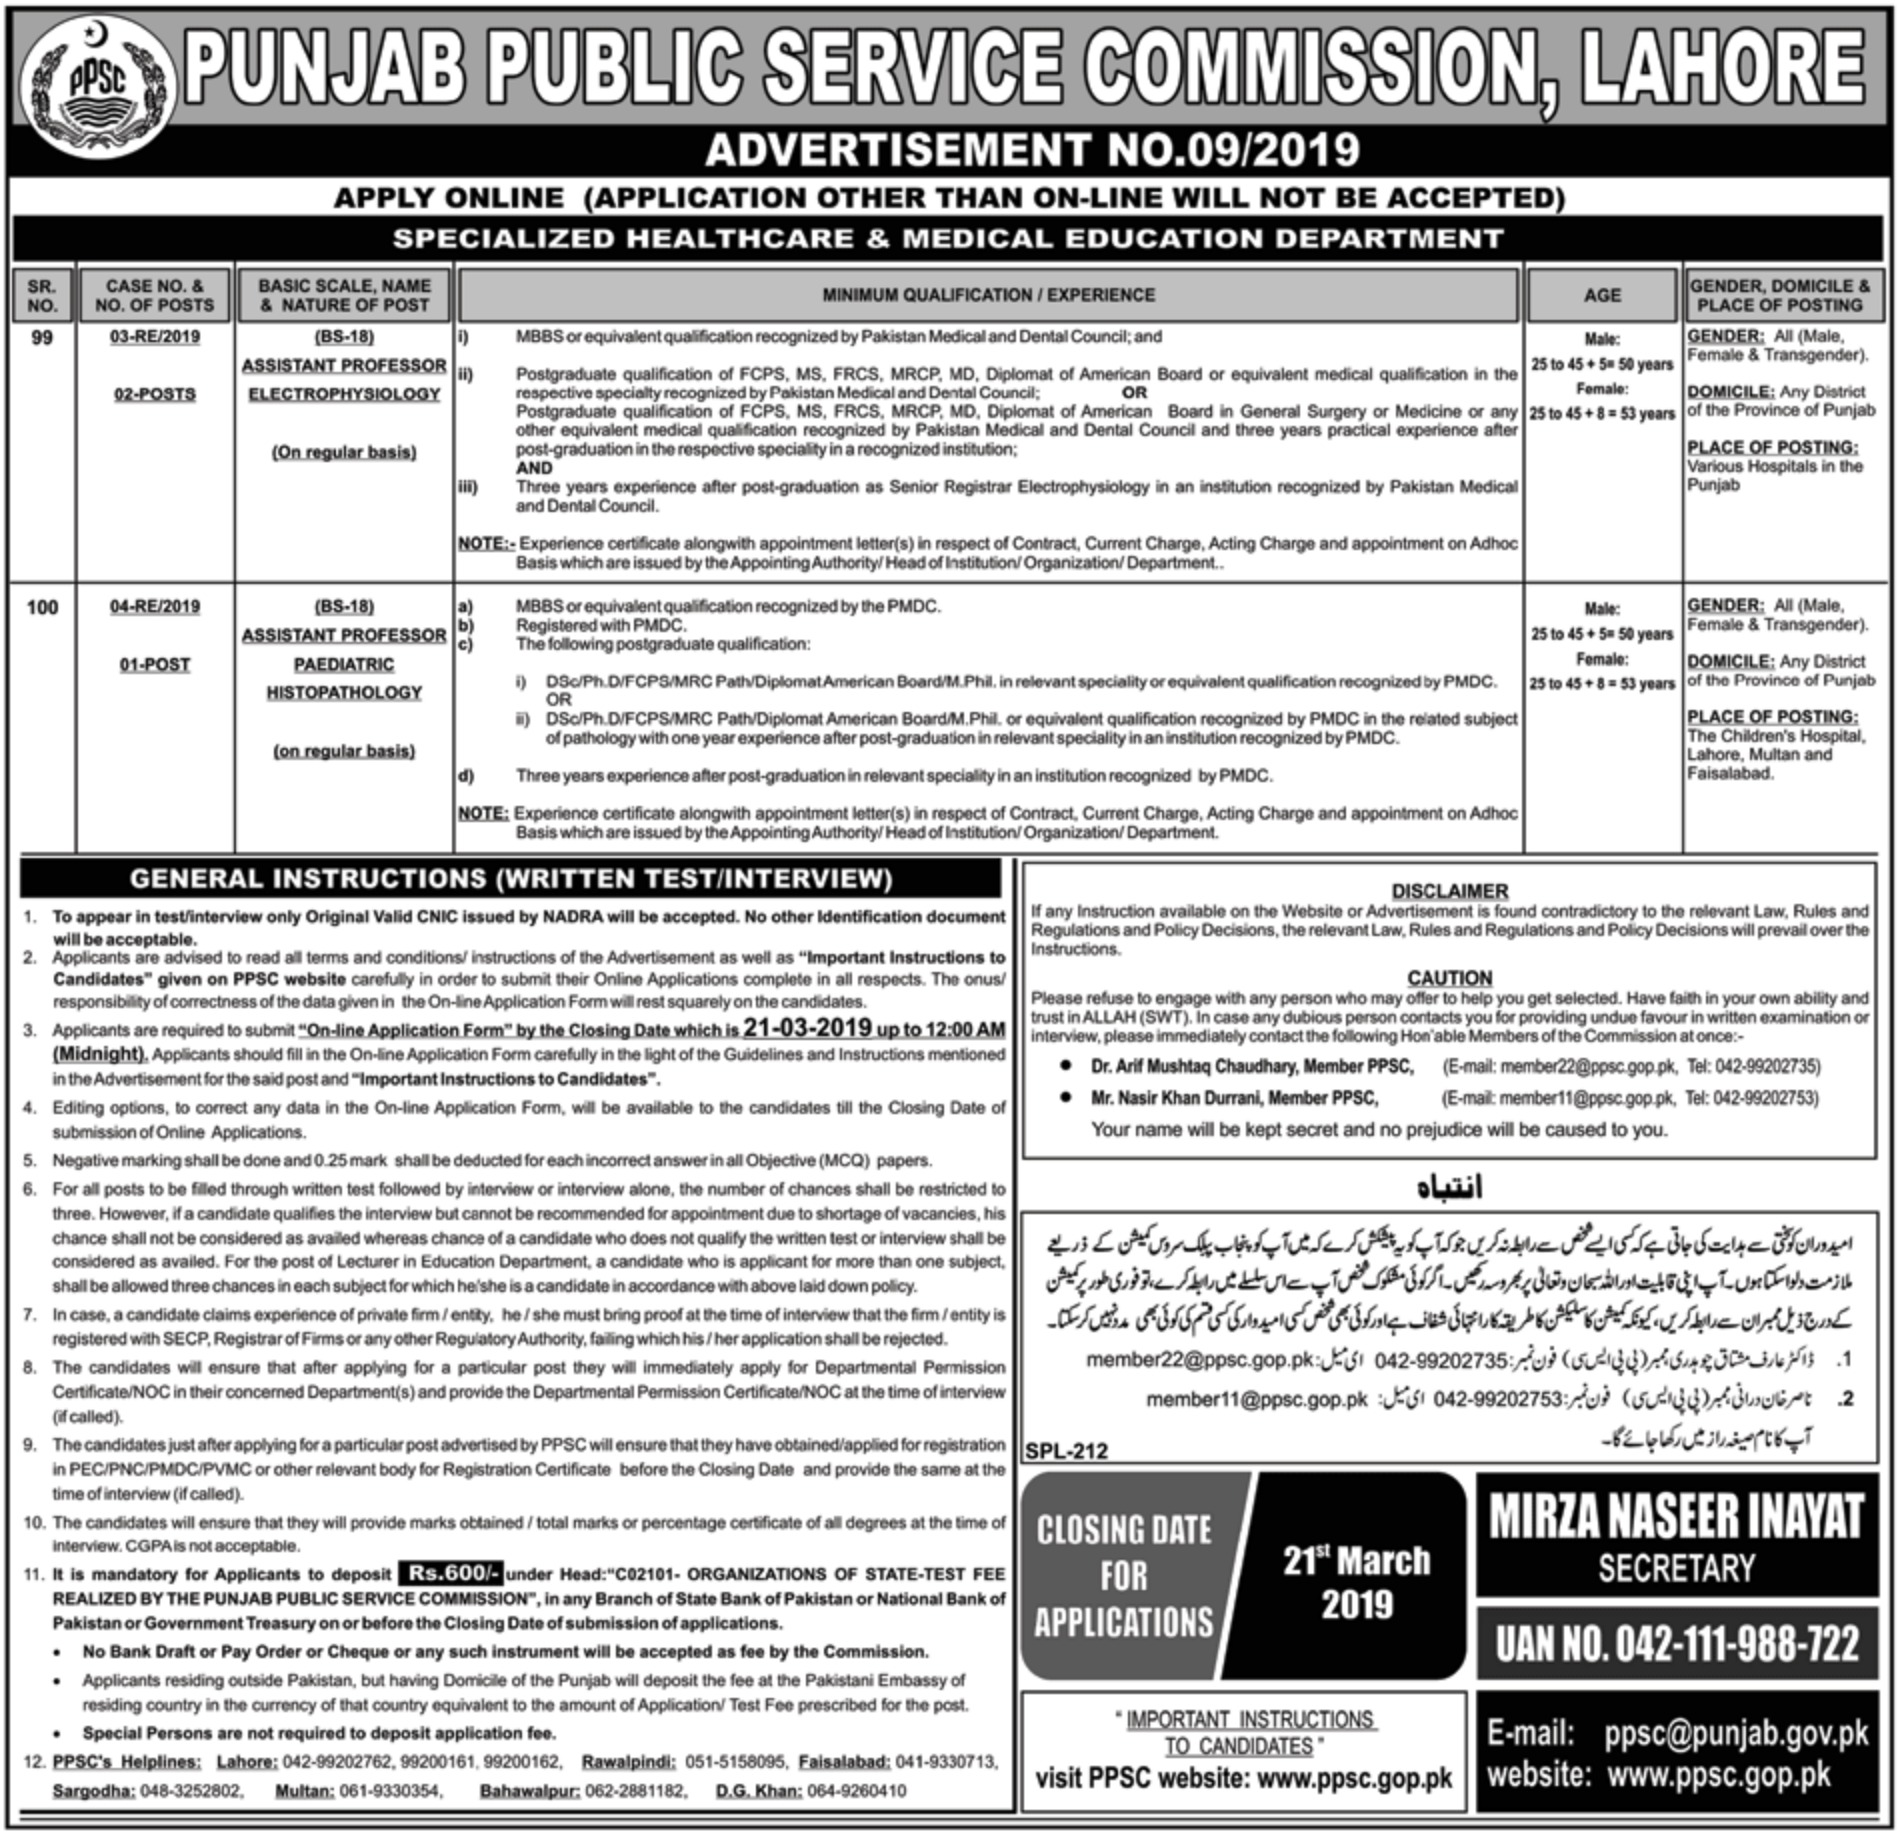 PPSC Jobs 2019 Punjab Public Service Commission Latest